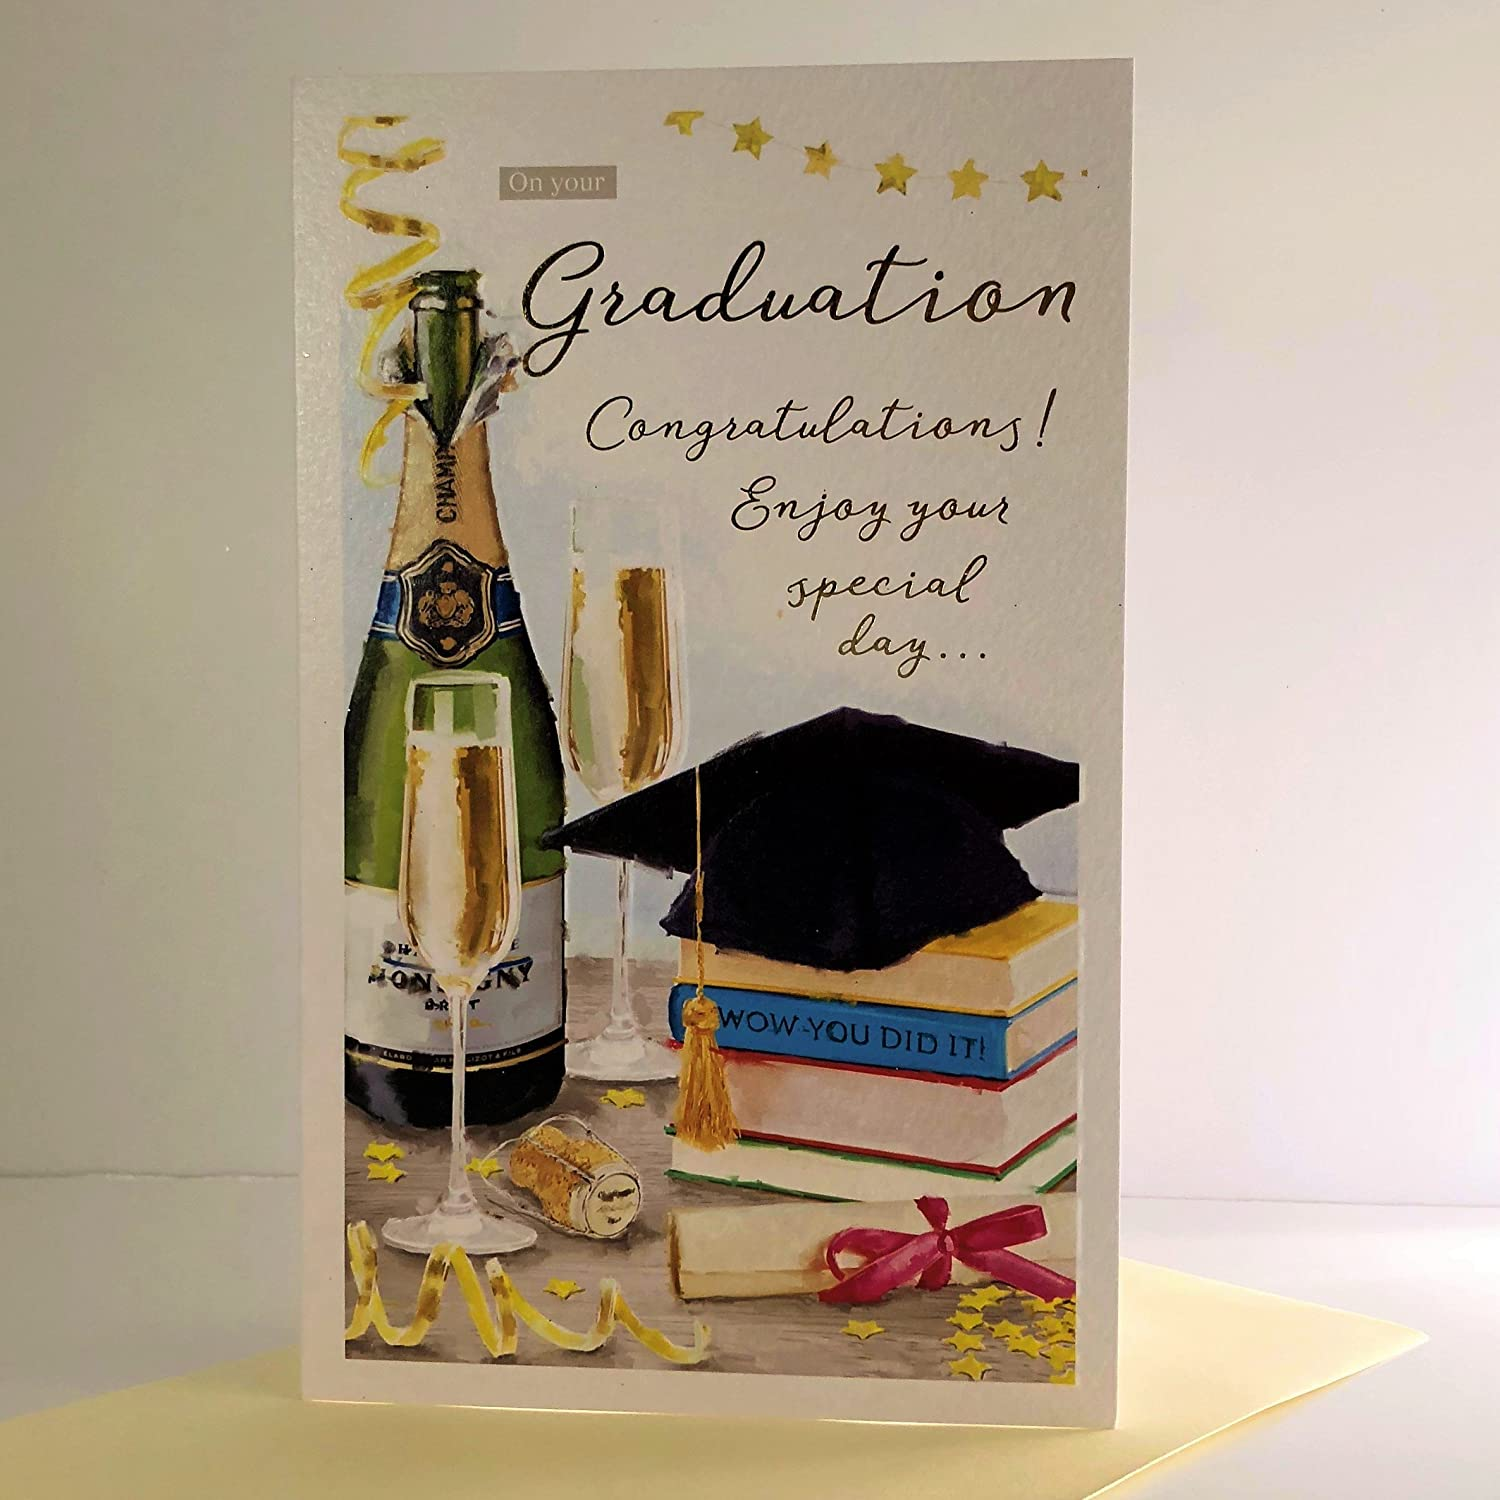 Essence Range ICG-8355 Artistic Graduation Card - Embossed and Foil Finish - Champagne and Graduation Cap